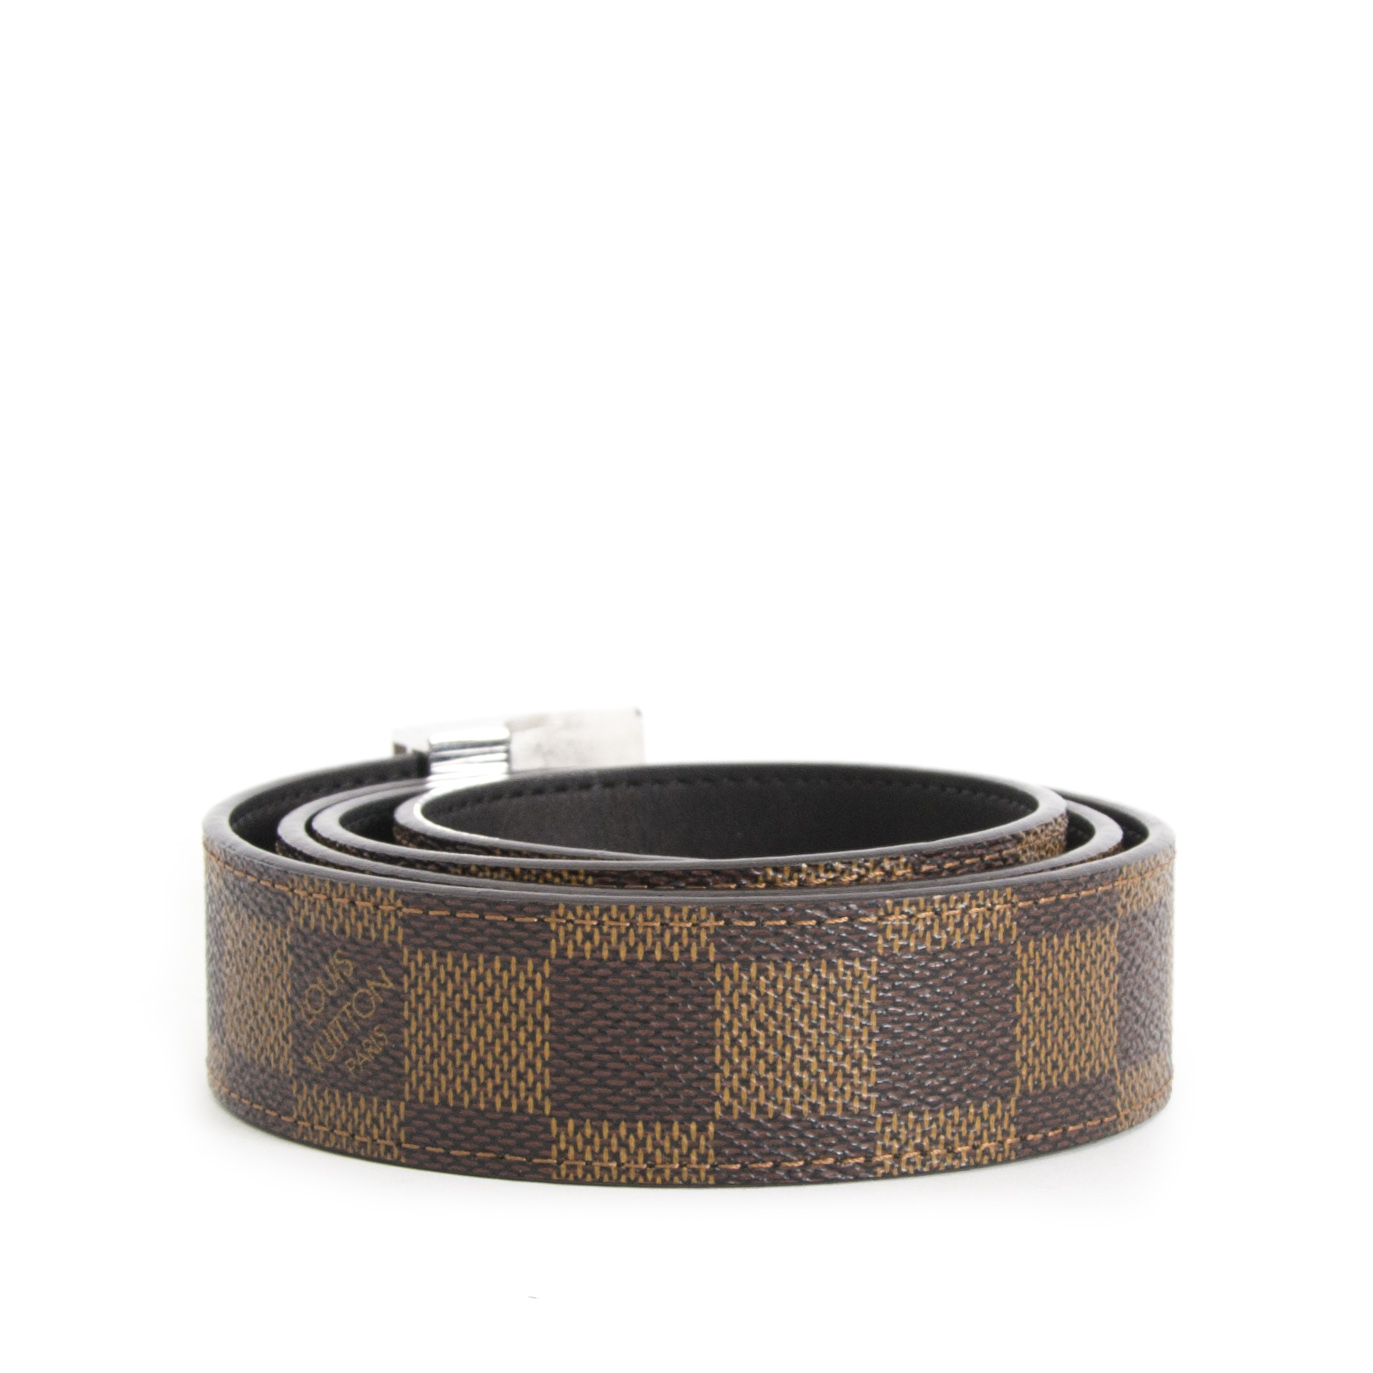 Buy your authentic Louis Vuitton Damier Belt  for the best price